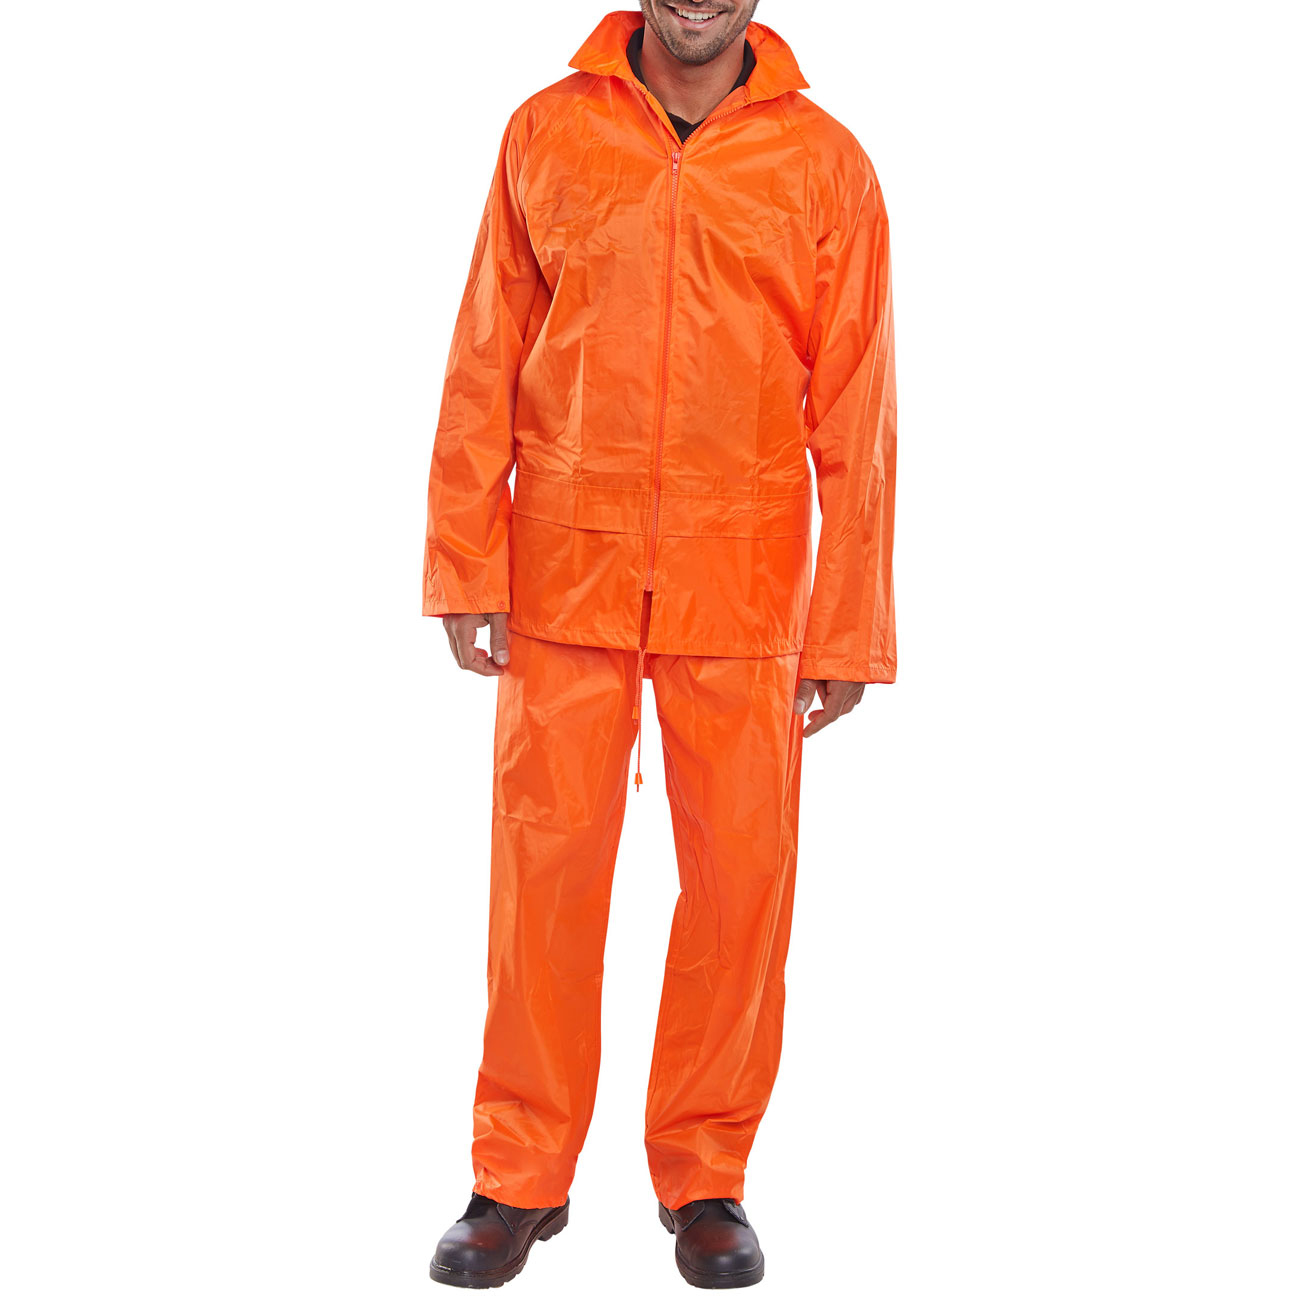 Weatherproof B-Dri Weatherproof Suit Nylon Jacket and Trouser 5XL Orange Ref NBDSOR5XL *Up to 3 Day Leadtime*